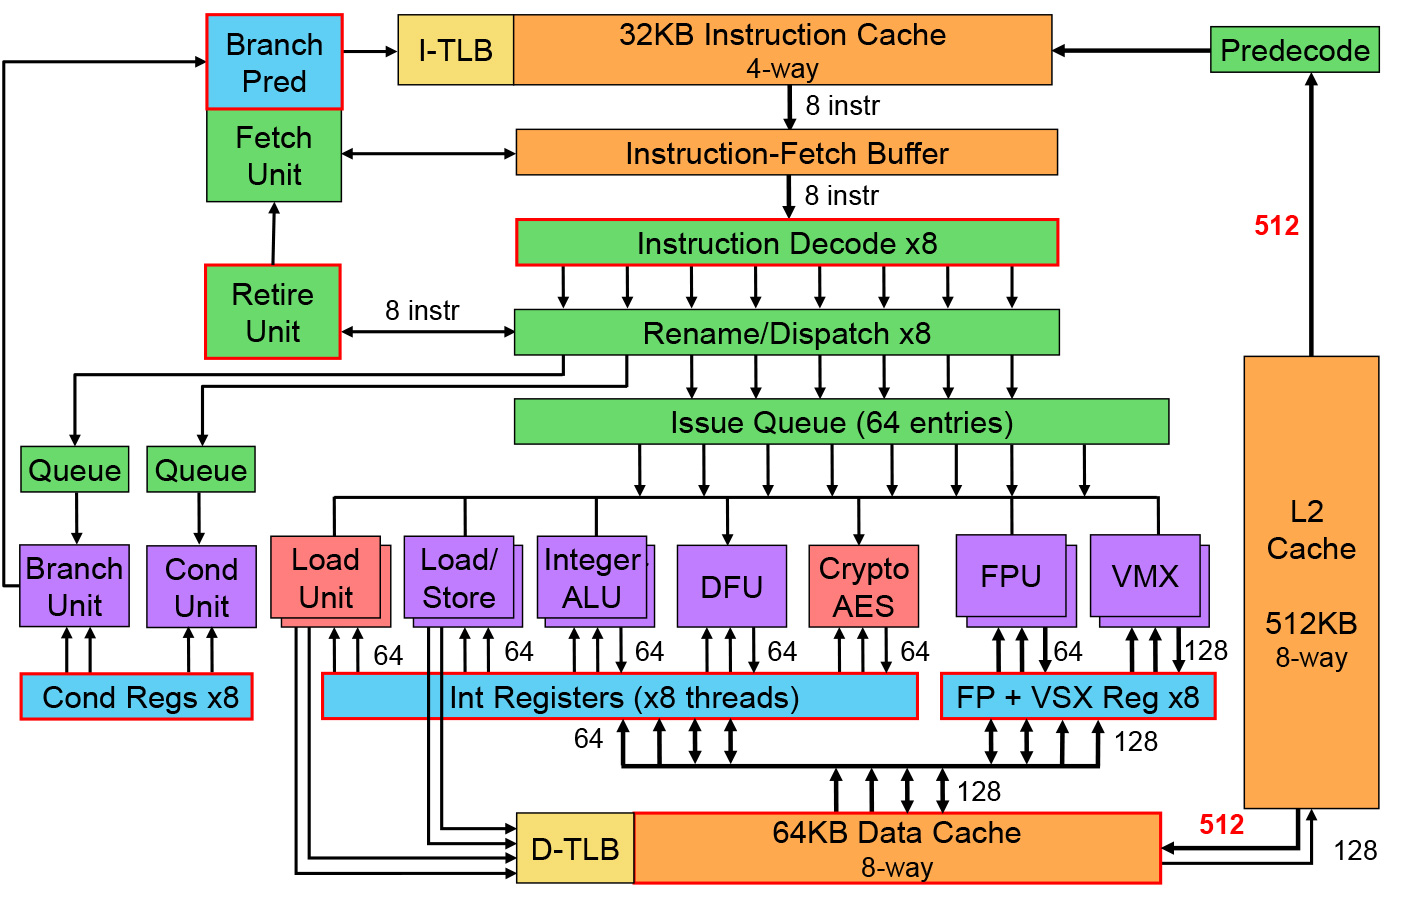 mainframe architecture diagram human hand bones ibm unveils power8 and openpower pincer attack on intel 39s